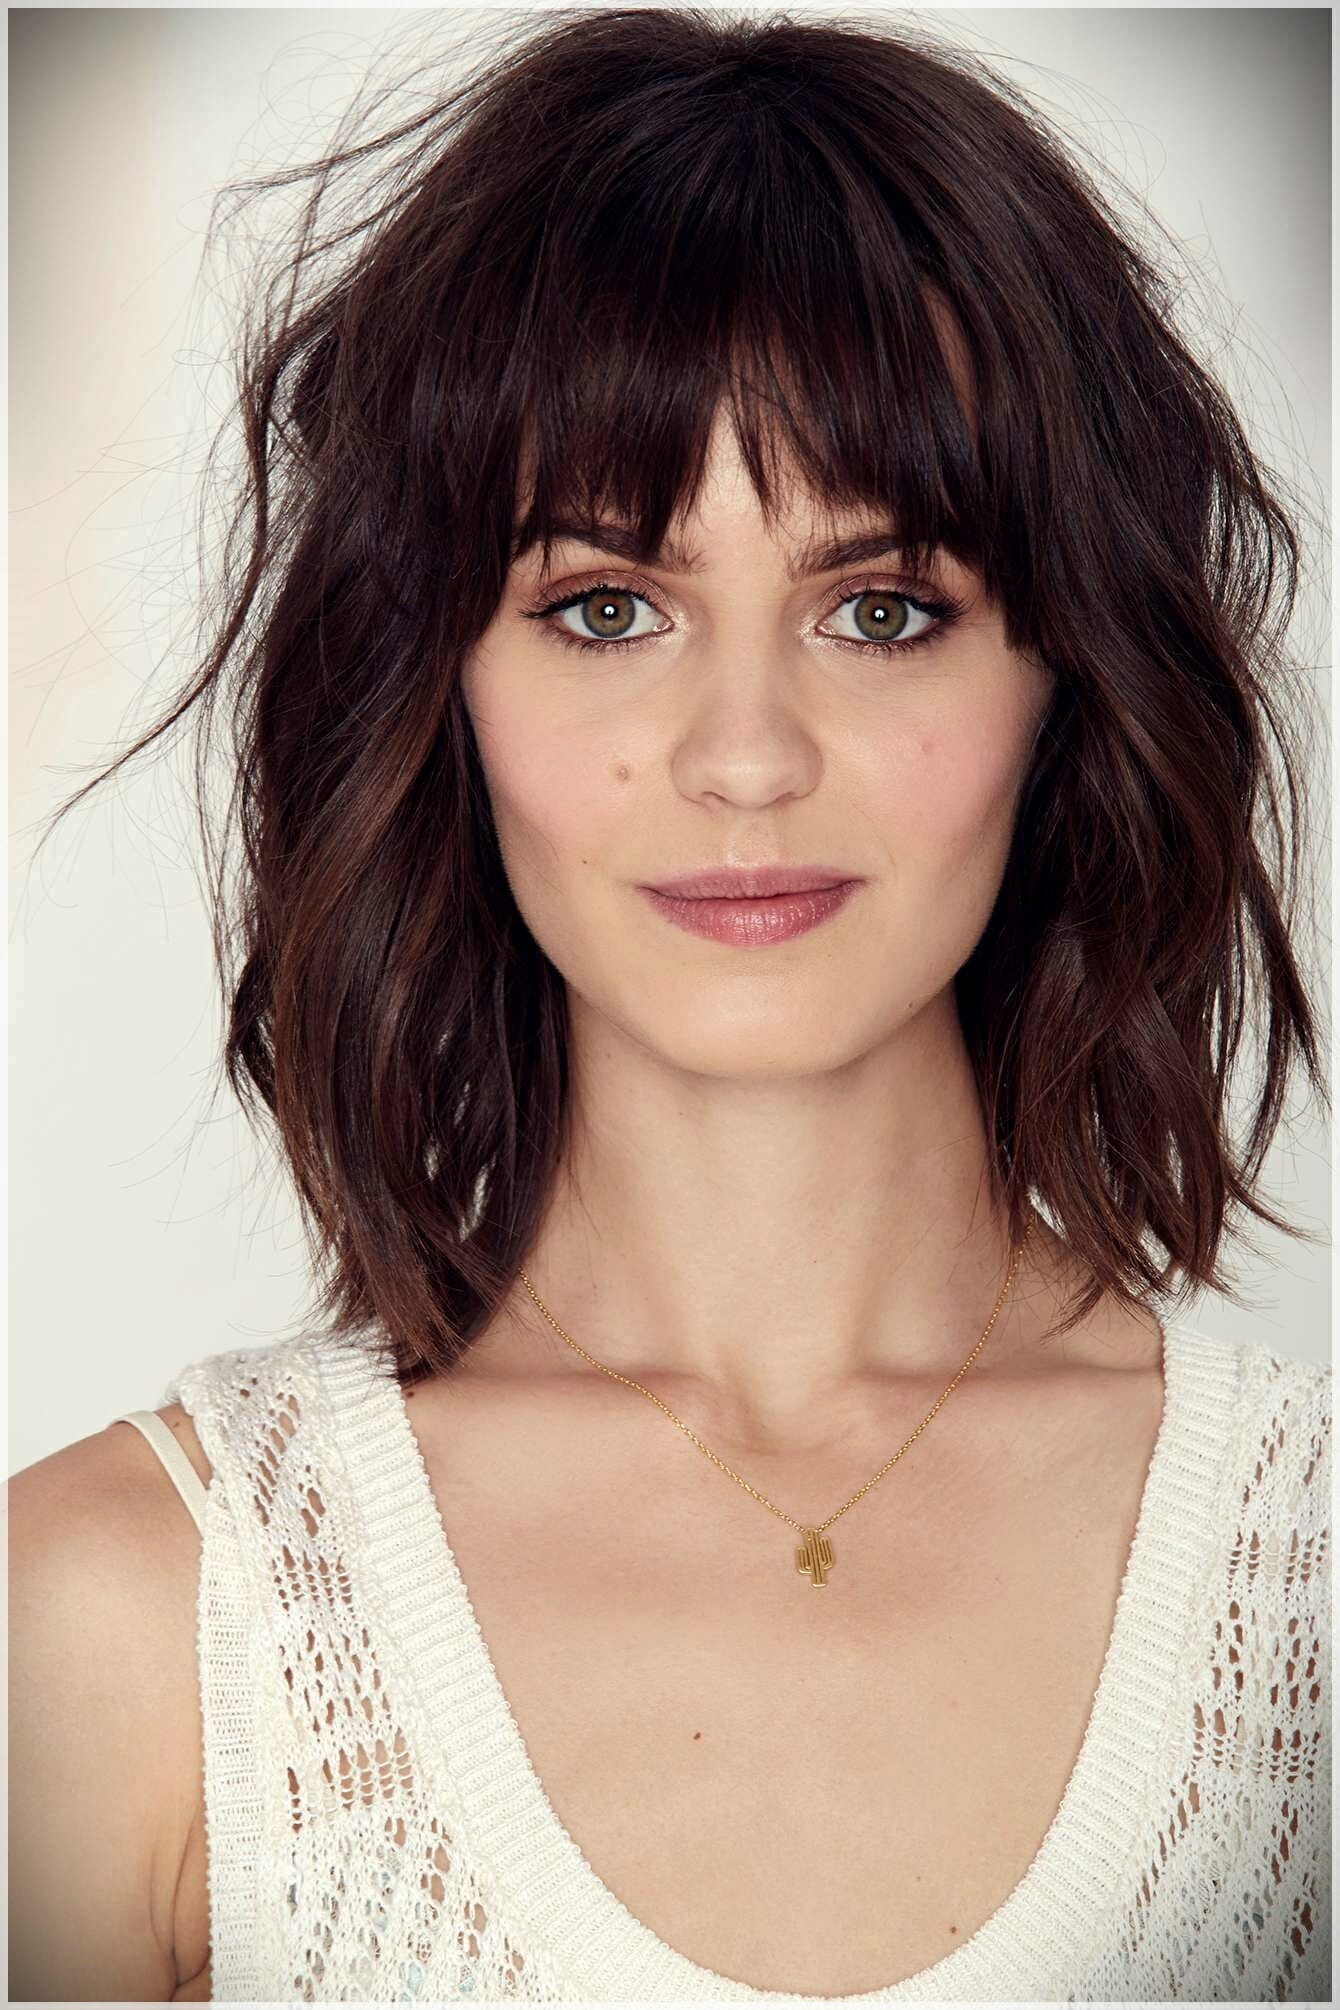 layered haircut with bangs 5 - Why getting bangs will never go out of fashion?